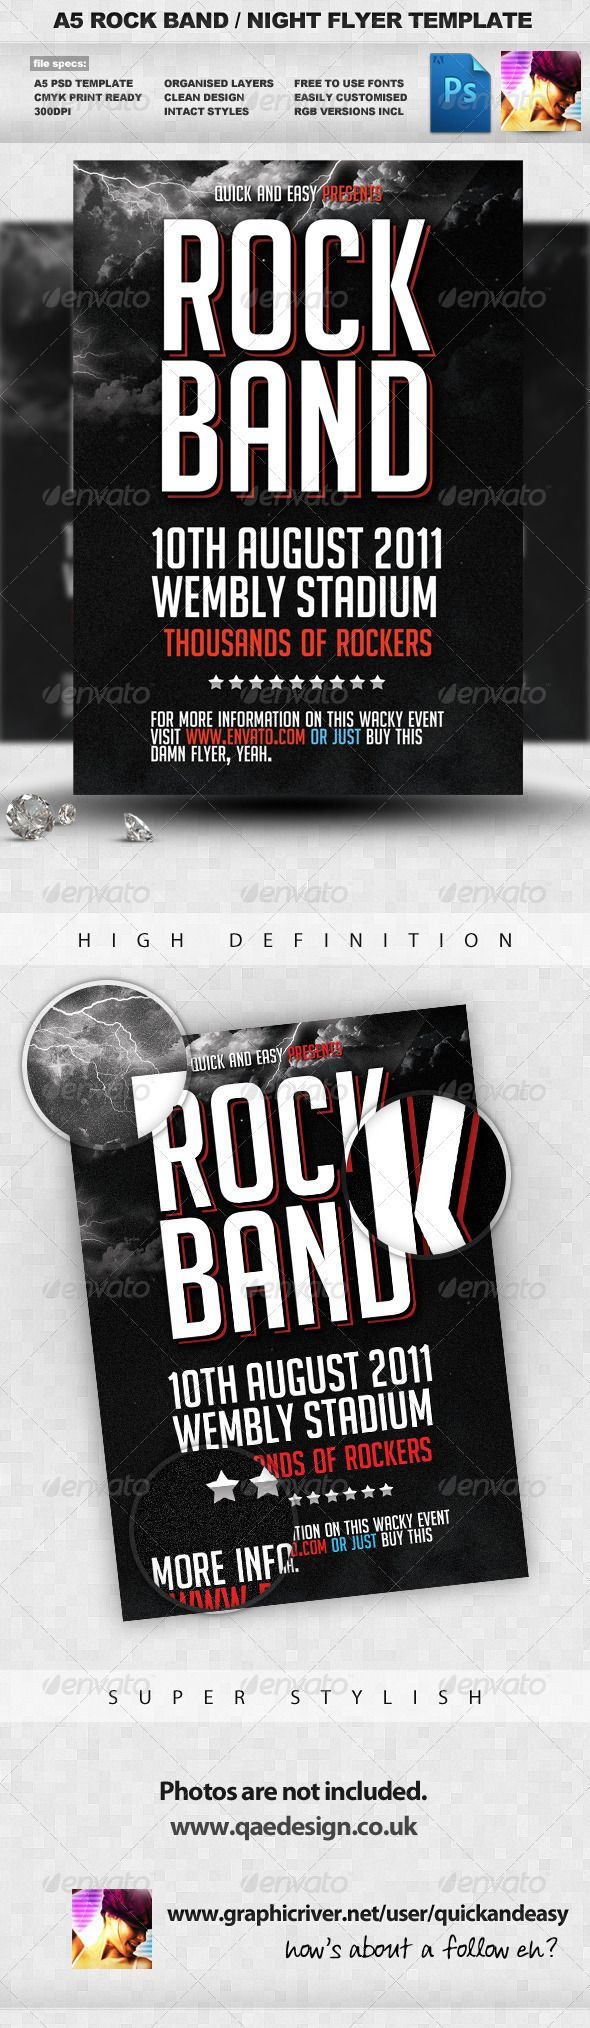 Rock Band Flyer Template  #GraphicRiver                    3 Layout Rock & Dan…